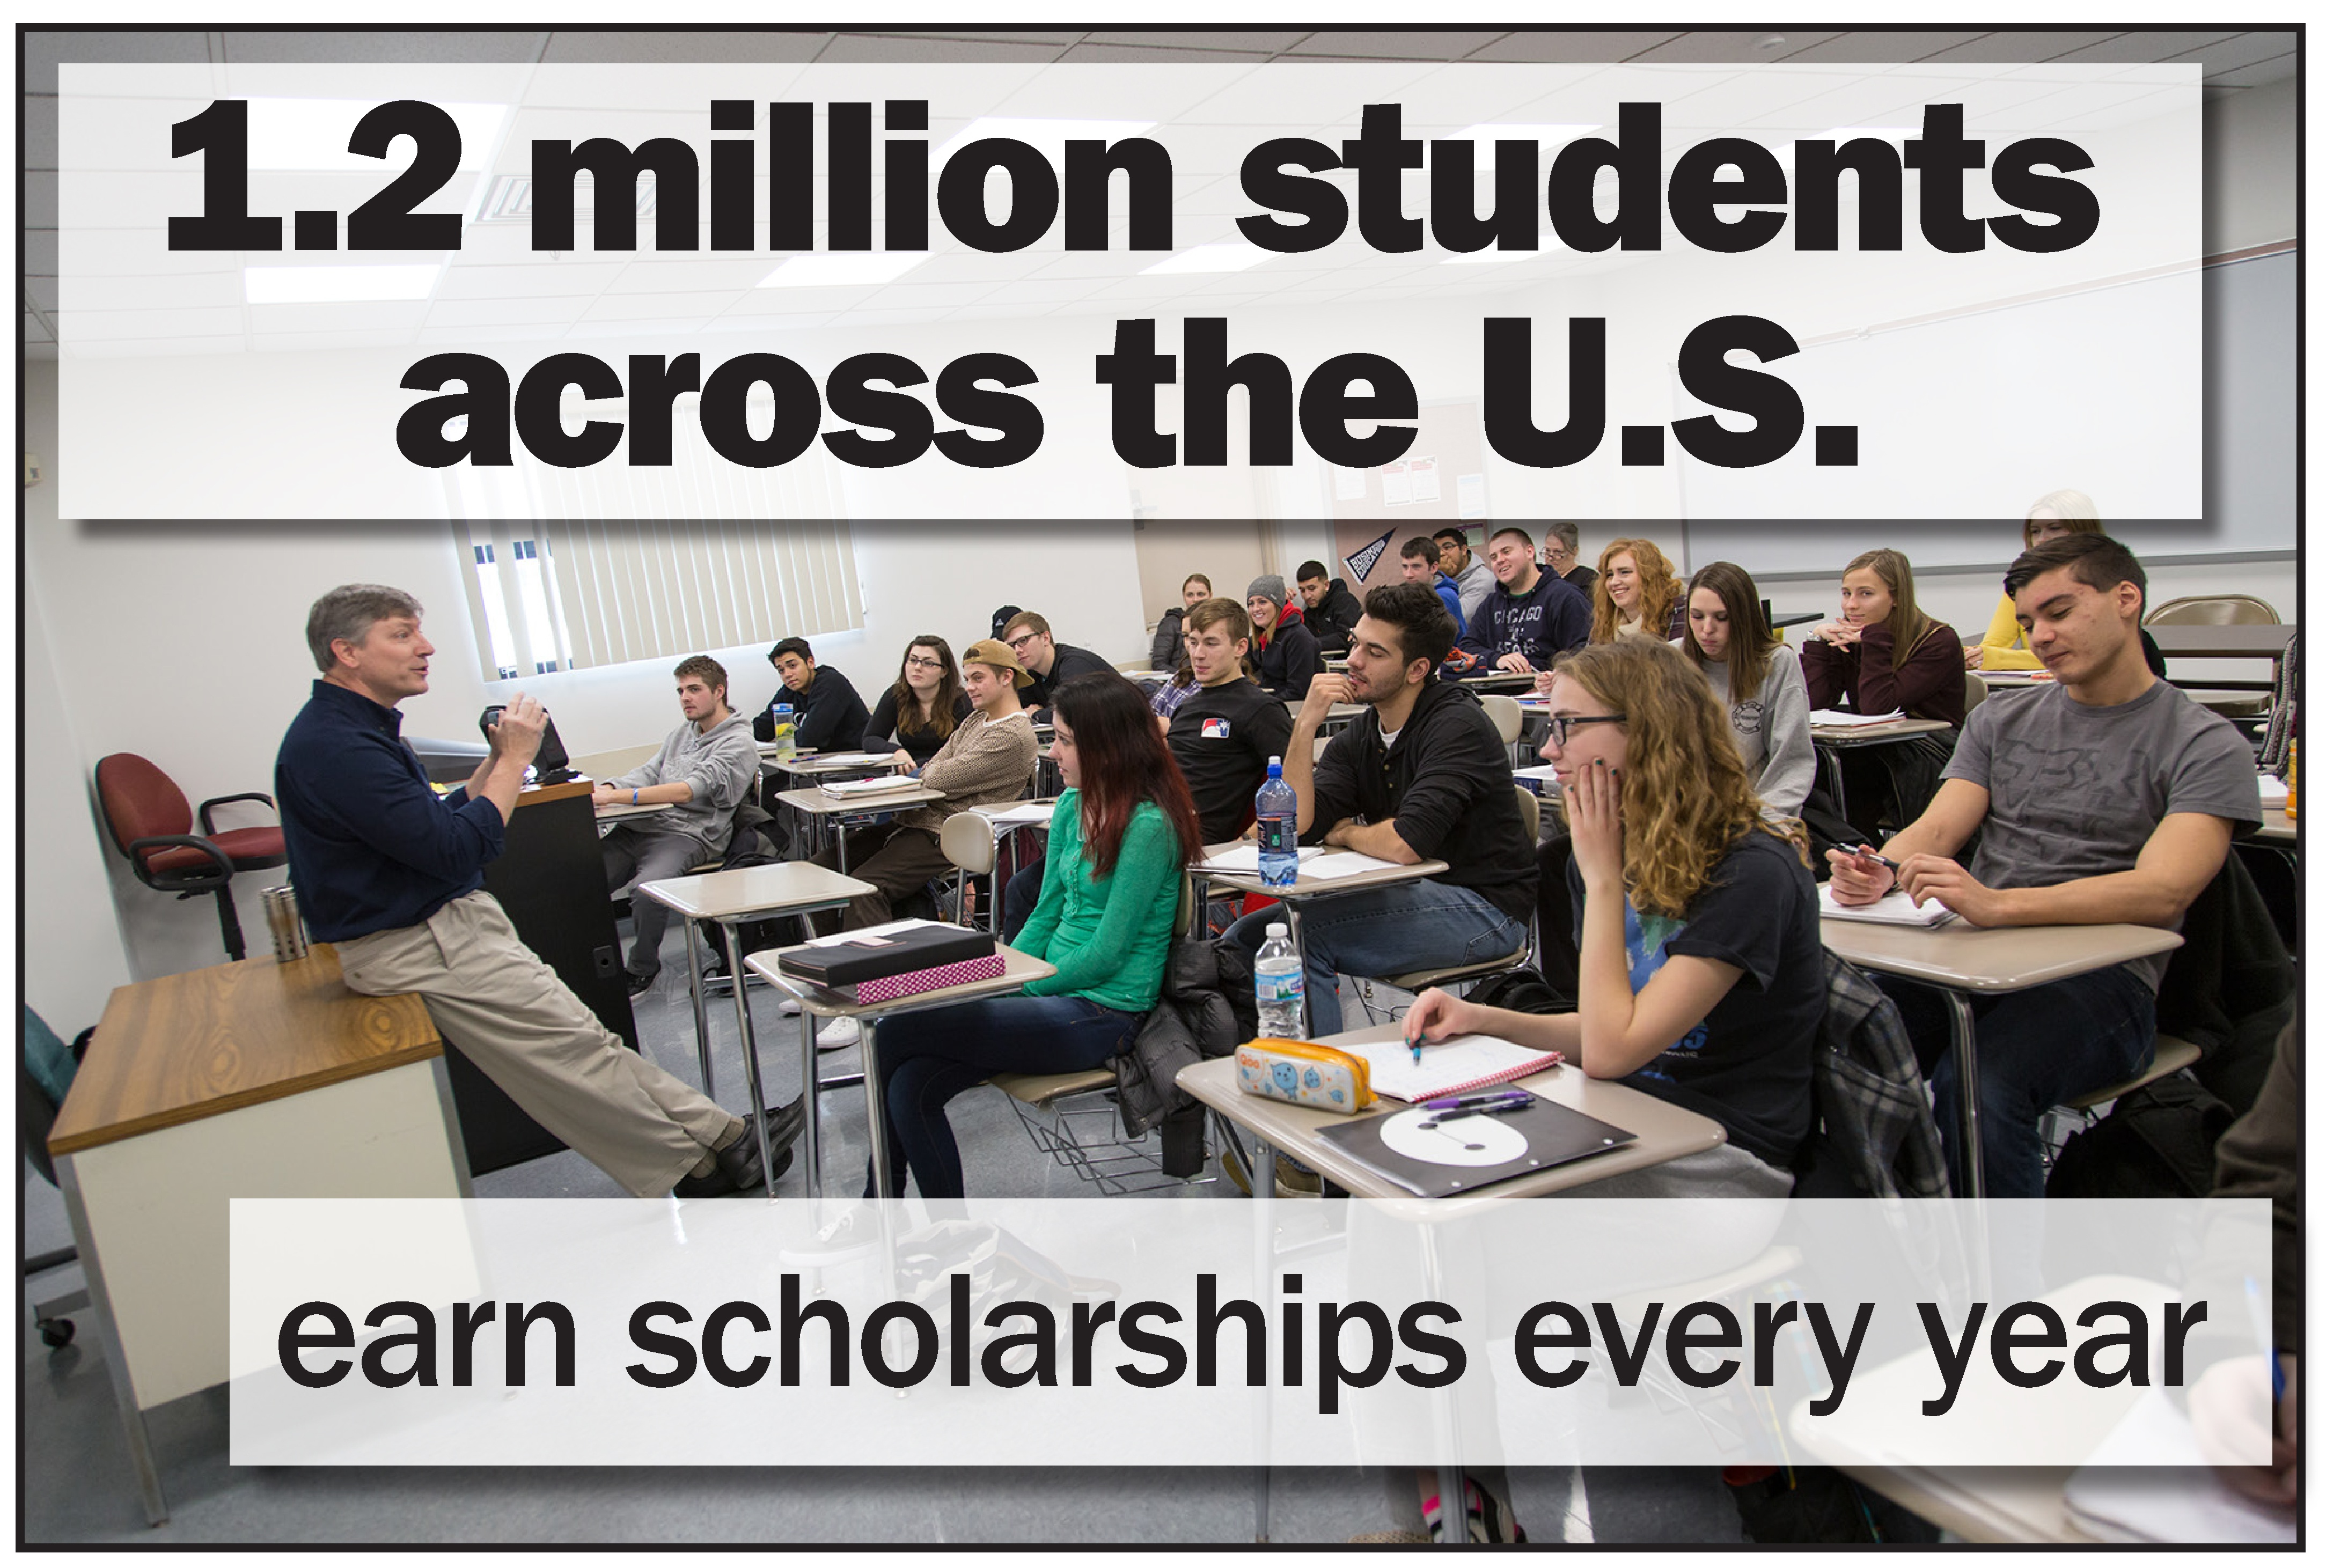 common scholarship myths busted jjc joliet junior college 1.2 million students across the us earn scholarships